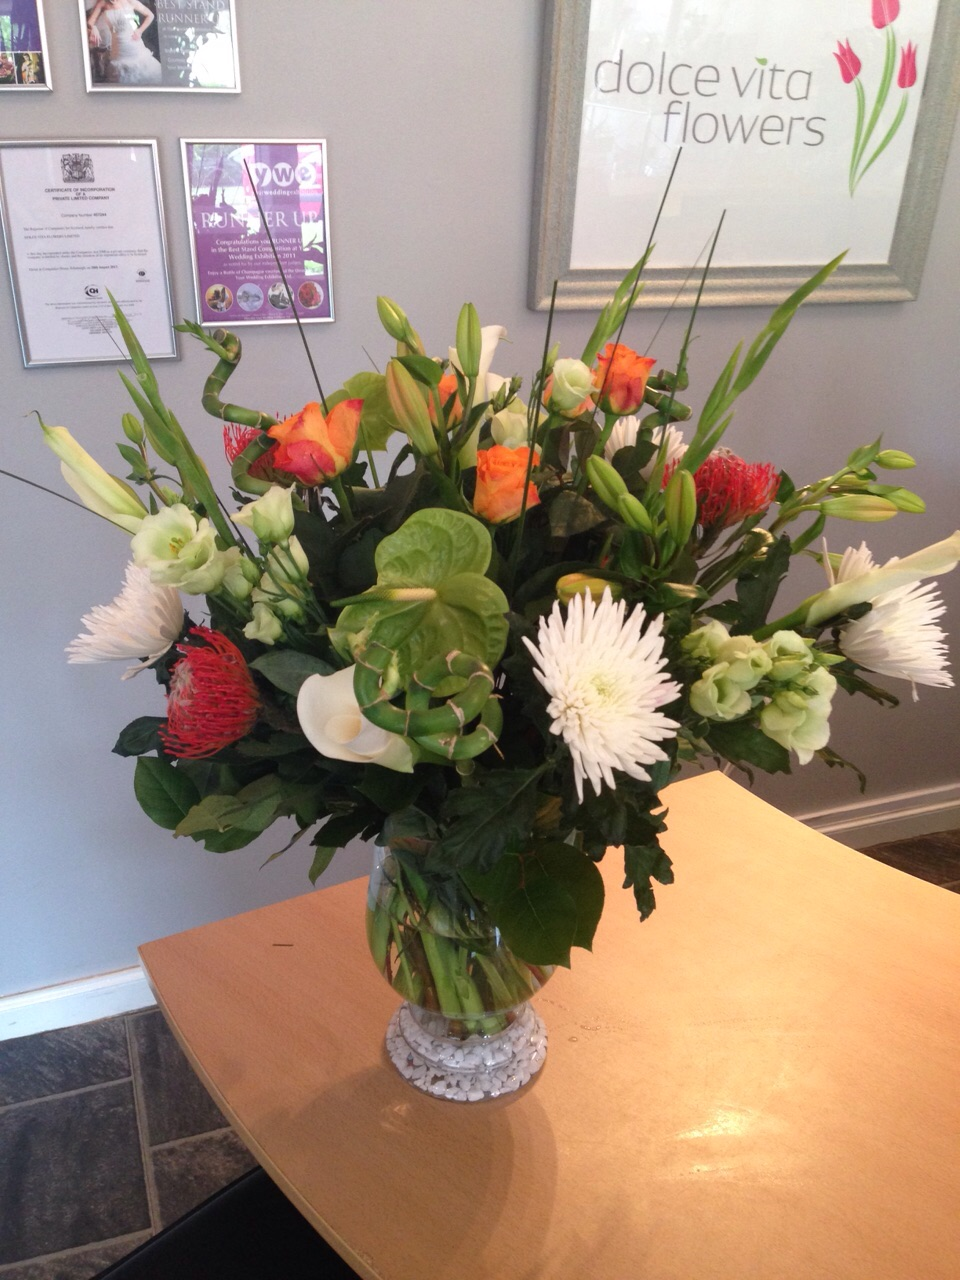 Bouquets delivery in aberdeen inverurie by dolce vita flowers bouquets for same day delivery in aberdeen inverurie izmirmasajfo